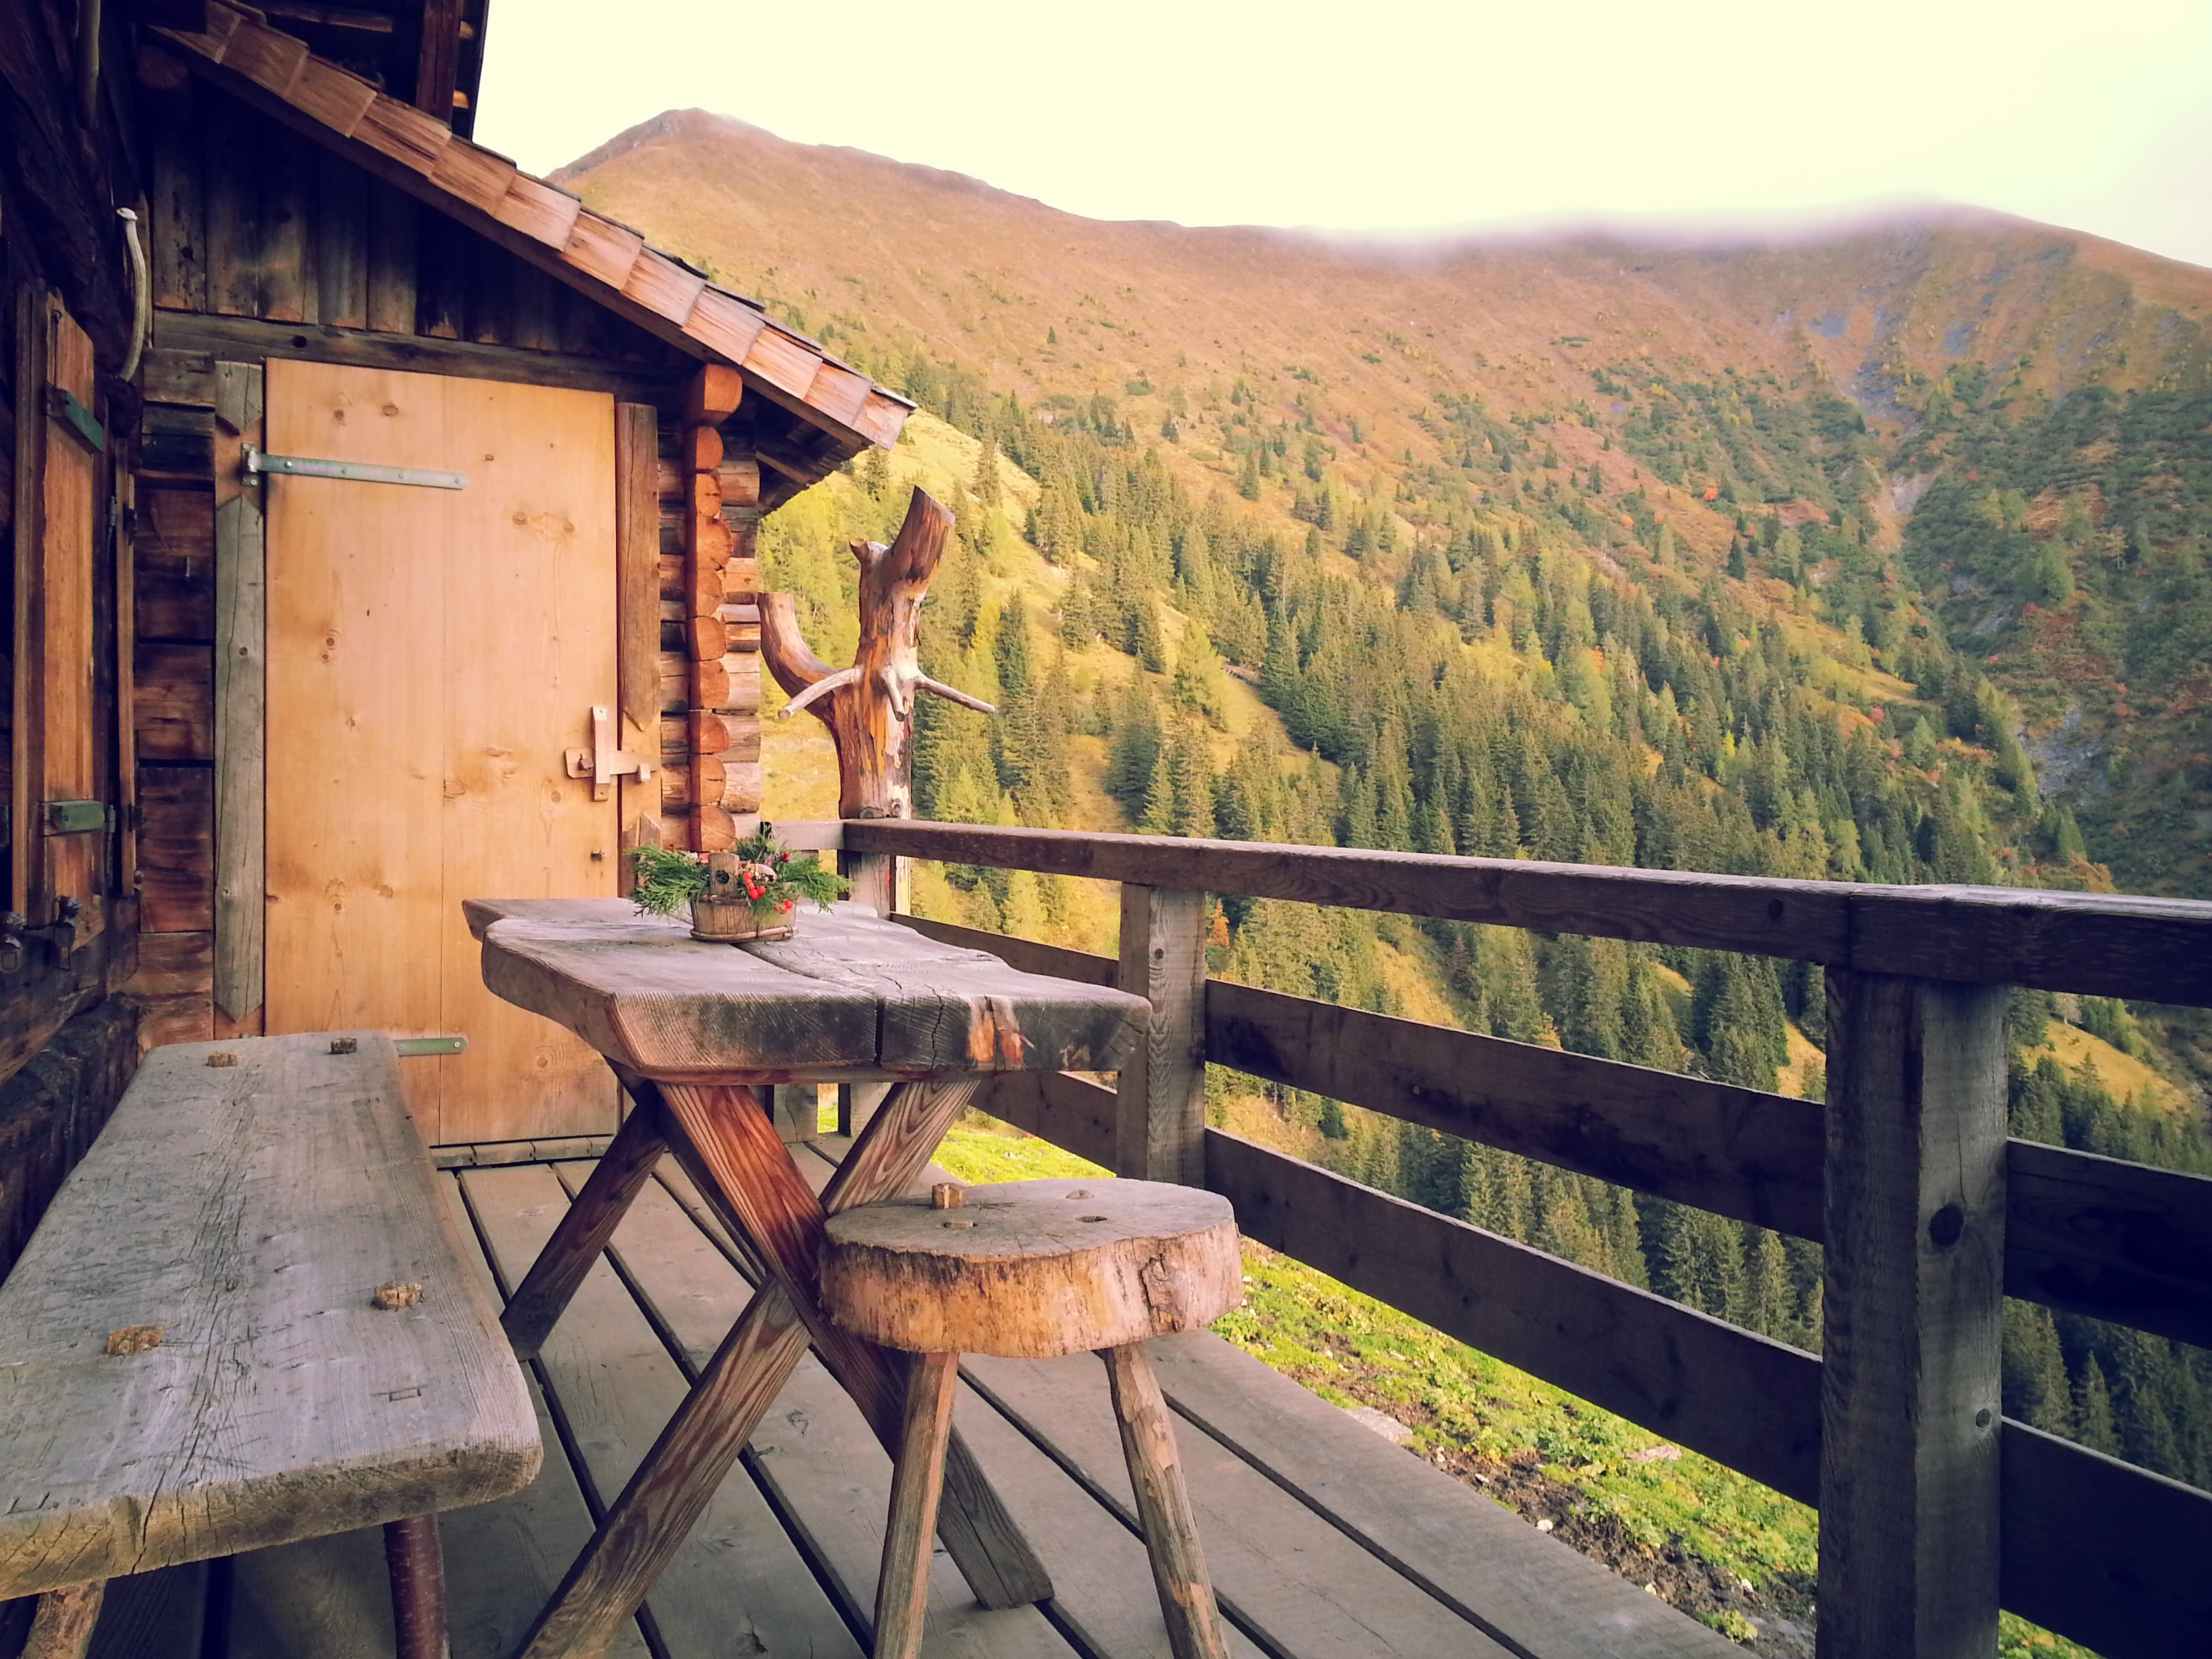 brown wooden table and bench near wooden balcony overlooking mountain at daytime